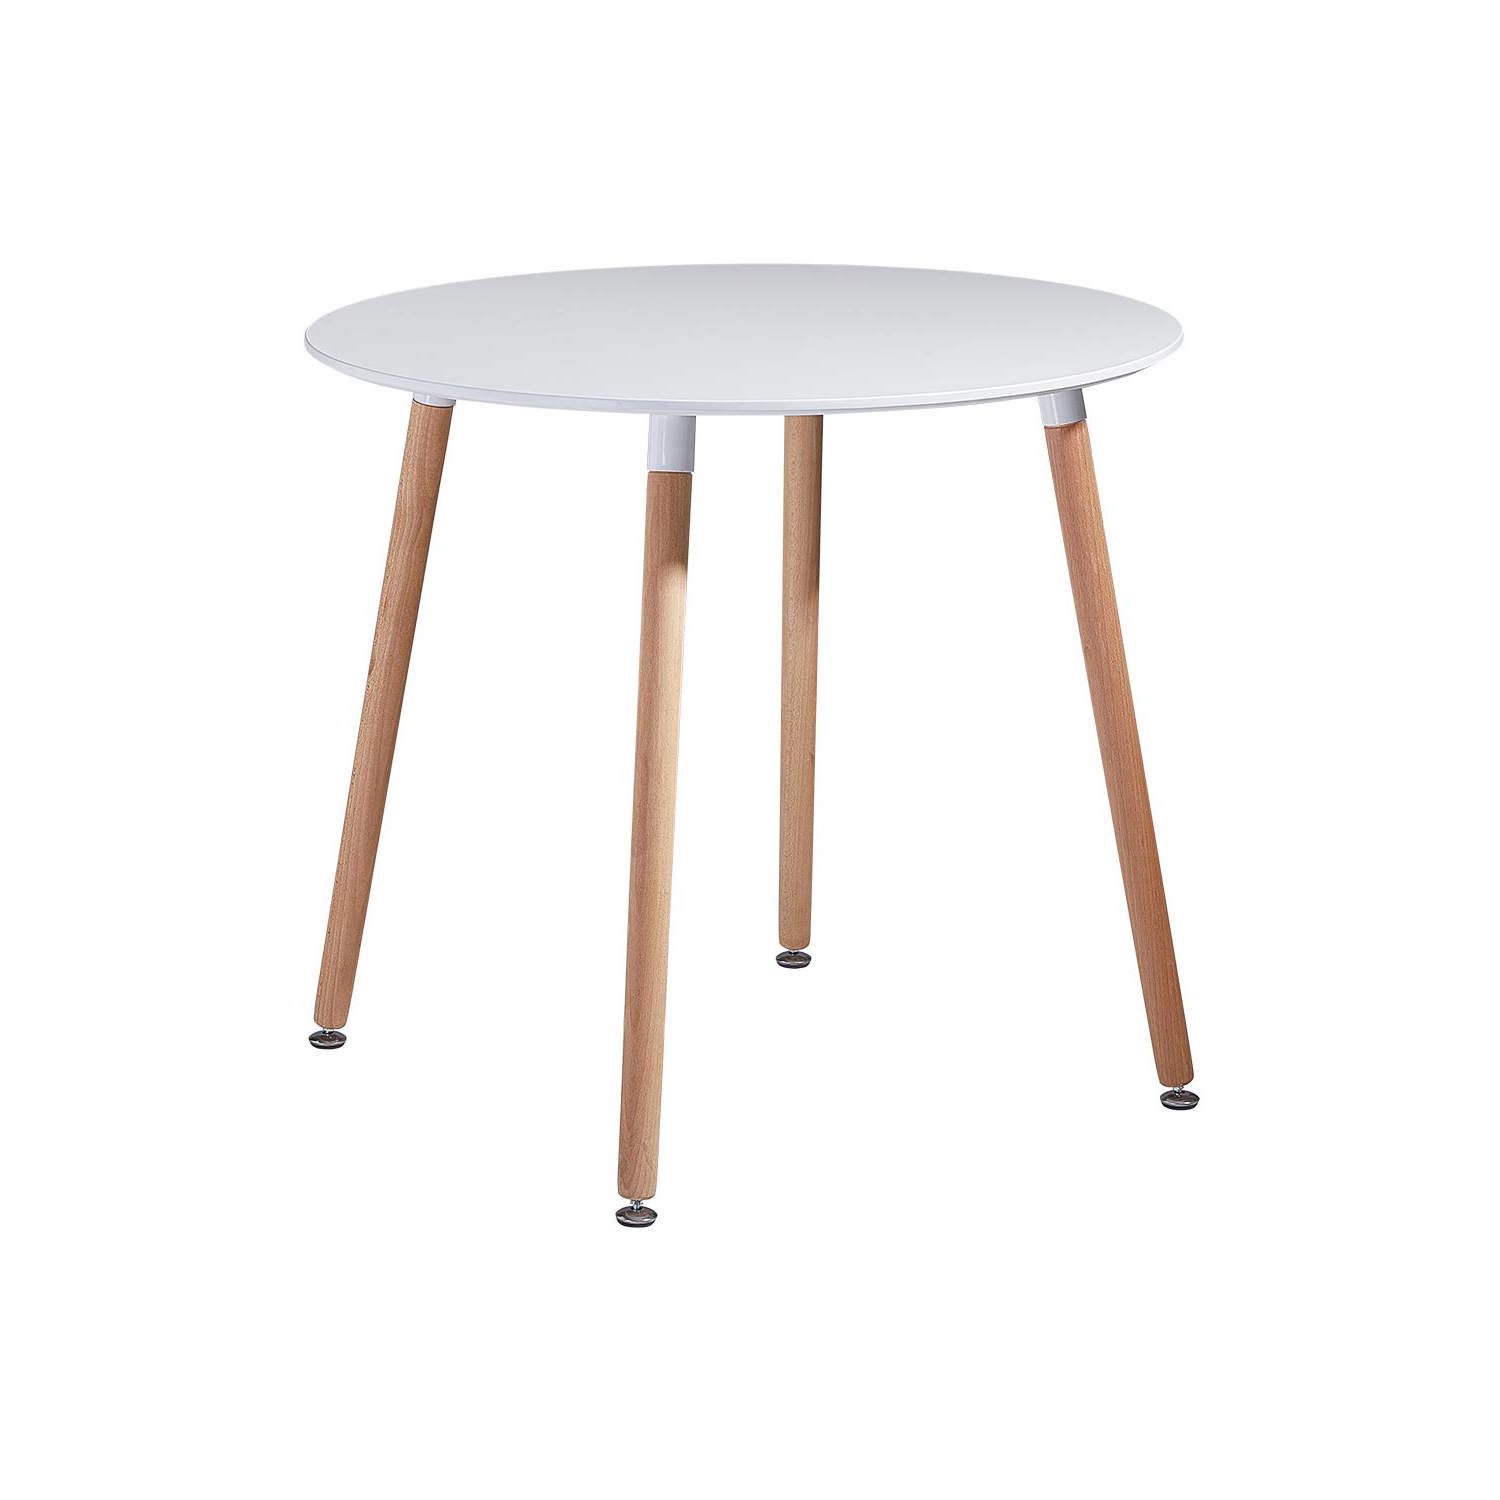 Well Known Details About 80cm White Round Dining Table With 4 Solid Beech Wood Legs Retro Kitchen Table Inside Solid Wood Circular Dining Tables White (View 22 of 30)